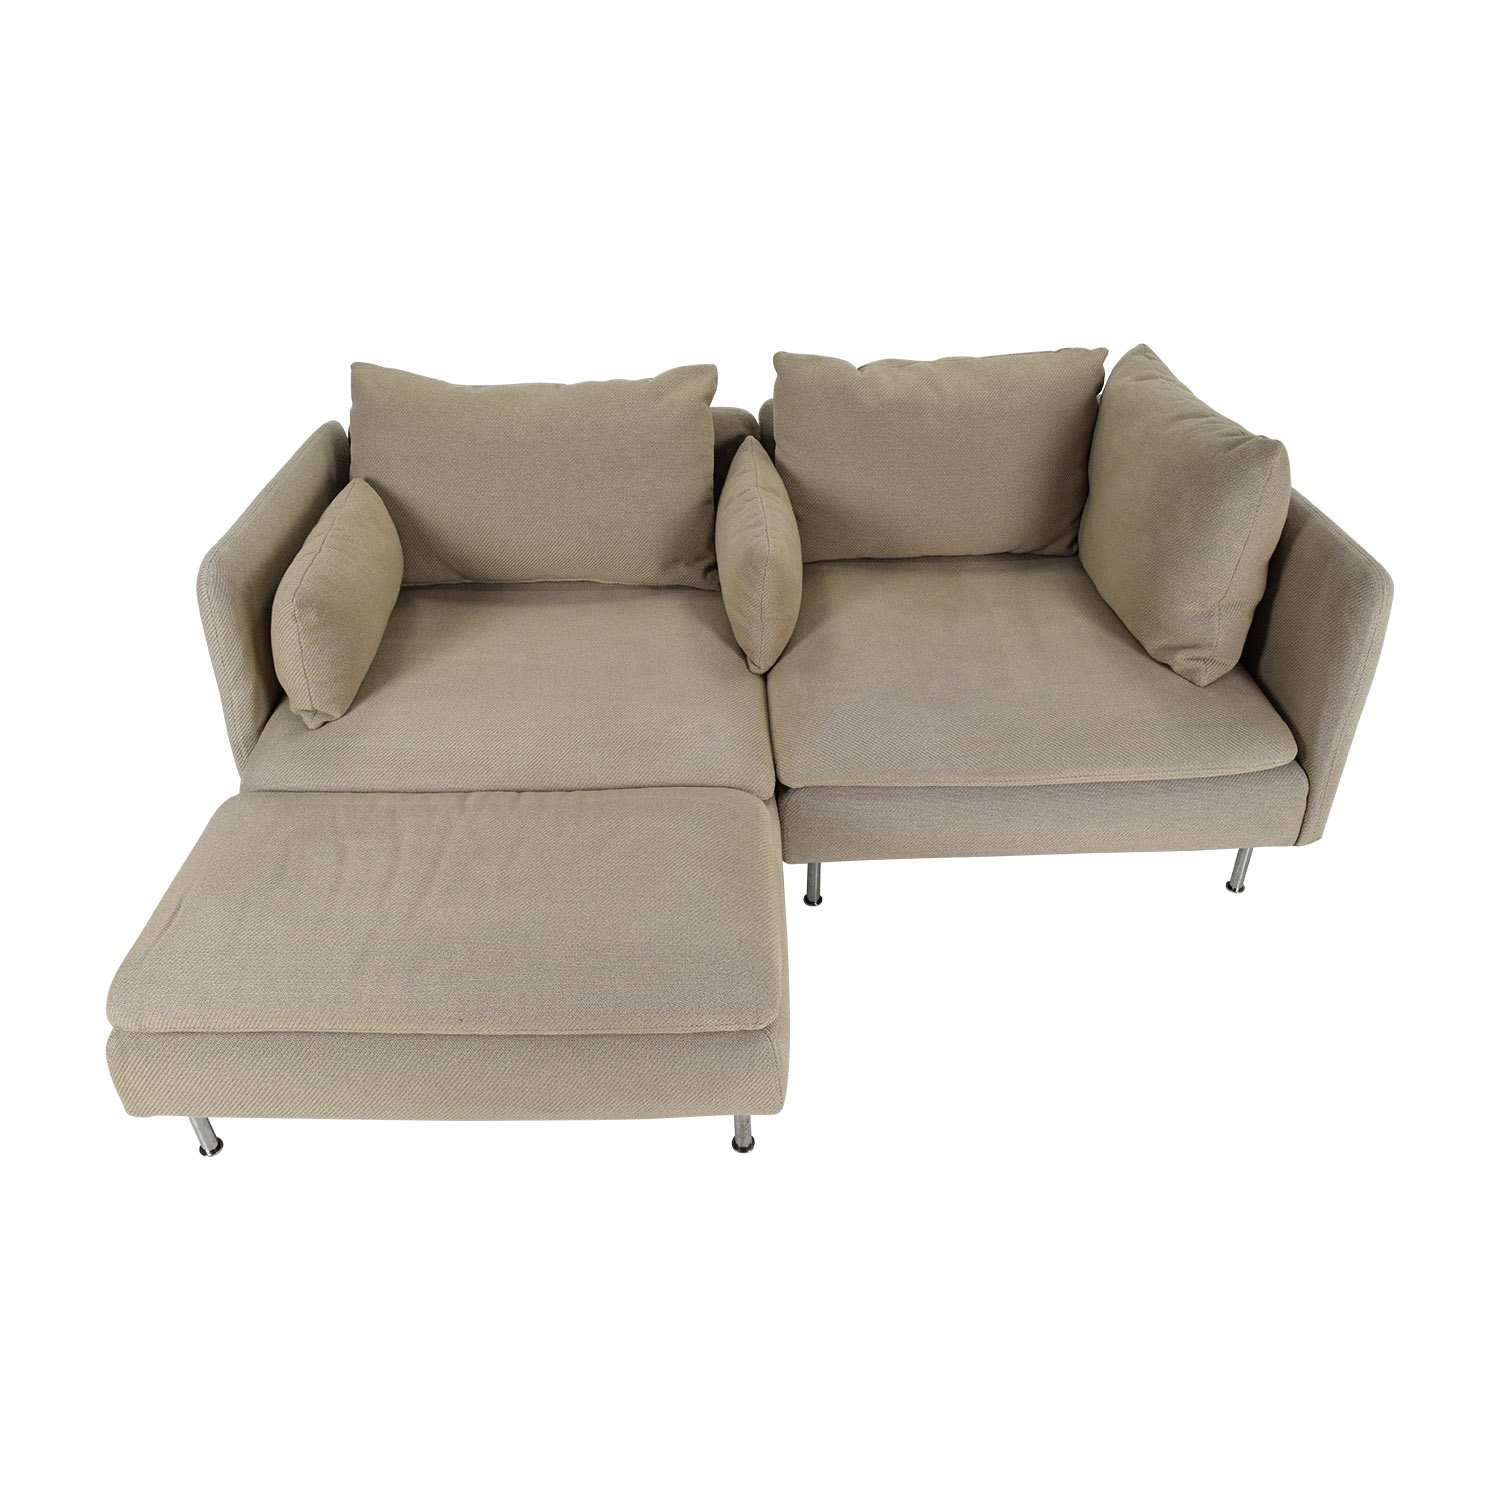 Small Sectional Sofa Ikea Small Sectional Ikea S3net